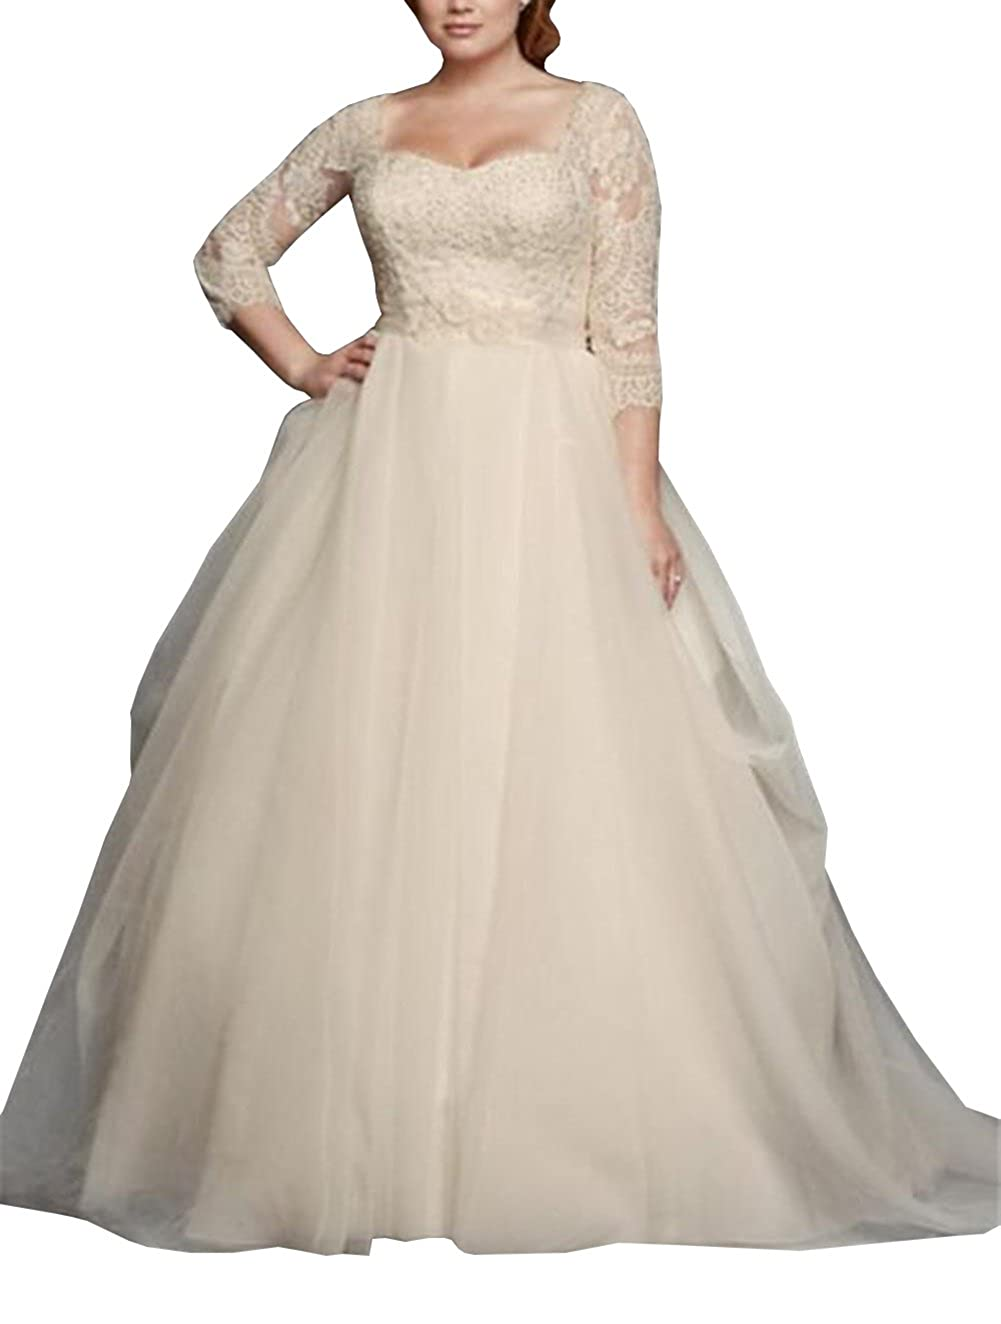 Dreamdress Women s Plus Size Half Sleeve Lace Tulle Wedding Dresses Ball at  Amazon Women s Clothing store  0073dc873f